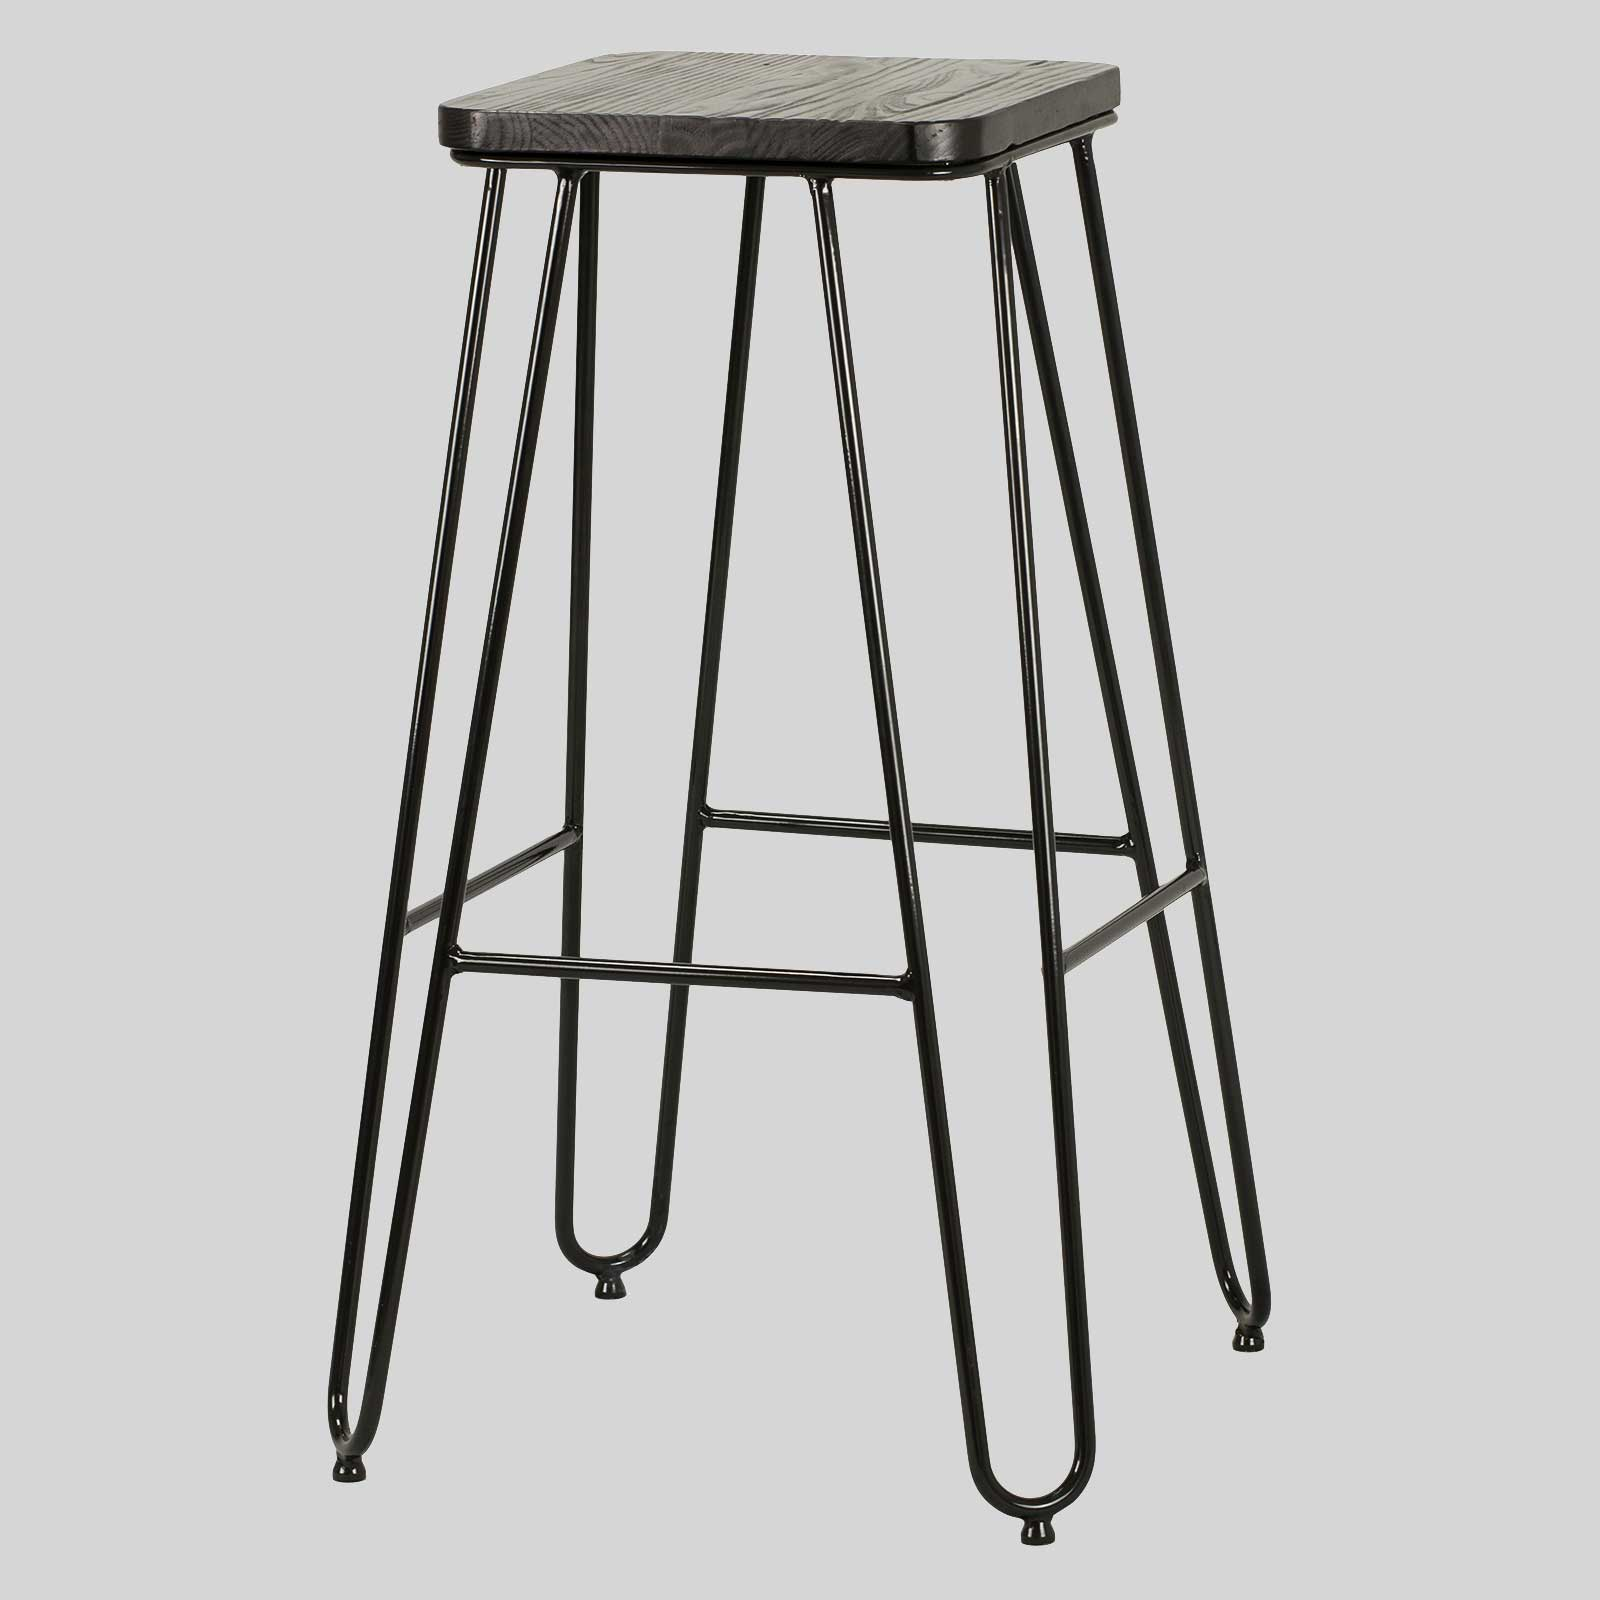 Hairpin Bartools for Hotels Bars amp Restaurants  : Manhattan Bar Stool Black Black A 1 from conceptcollections.com.au size 1600 x 1600 jpeg 76kB